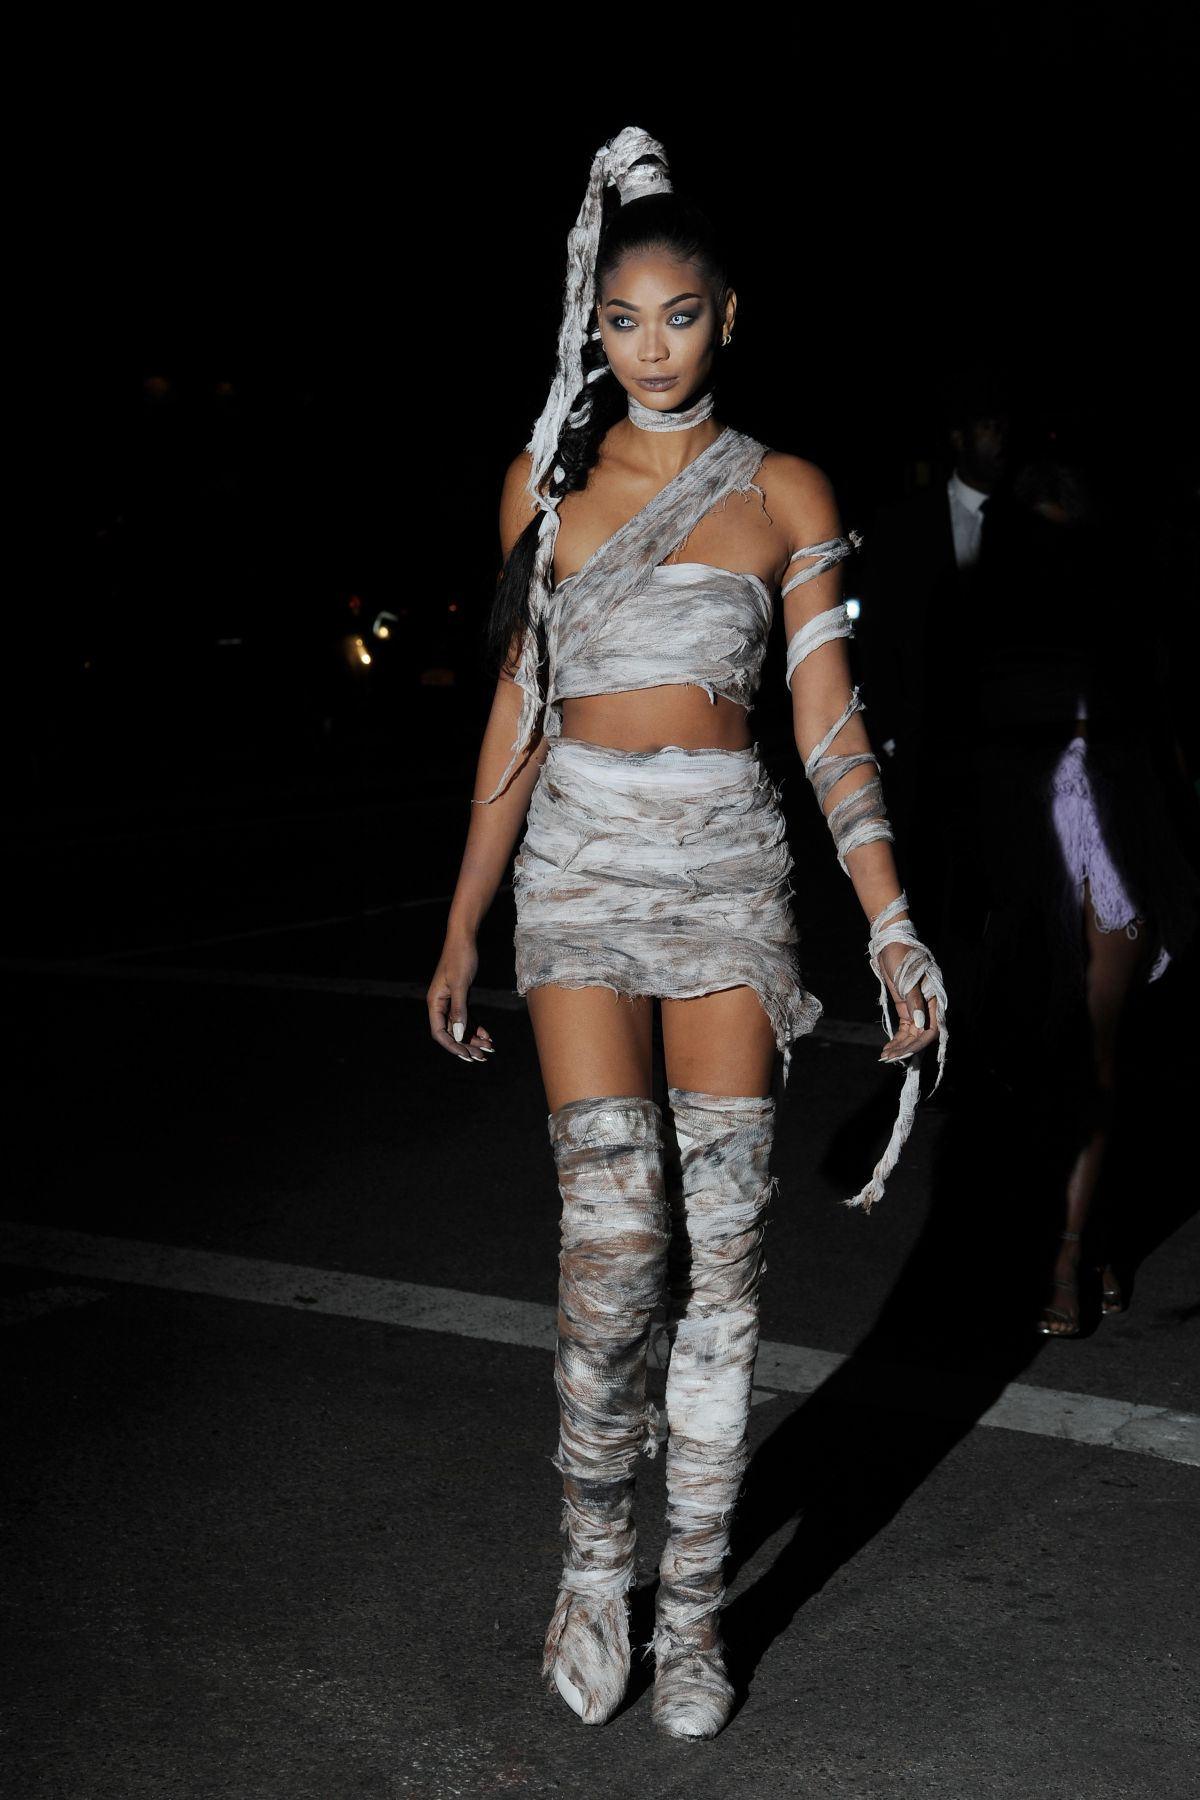 CHANEL IMAN at Heidi Klum's 17th Annual Halloween Bash in New York 10/31/2016